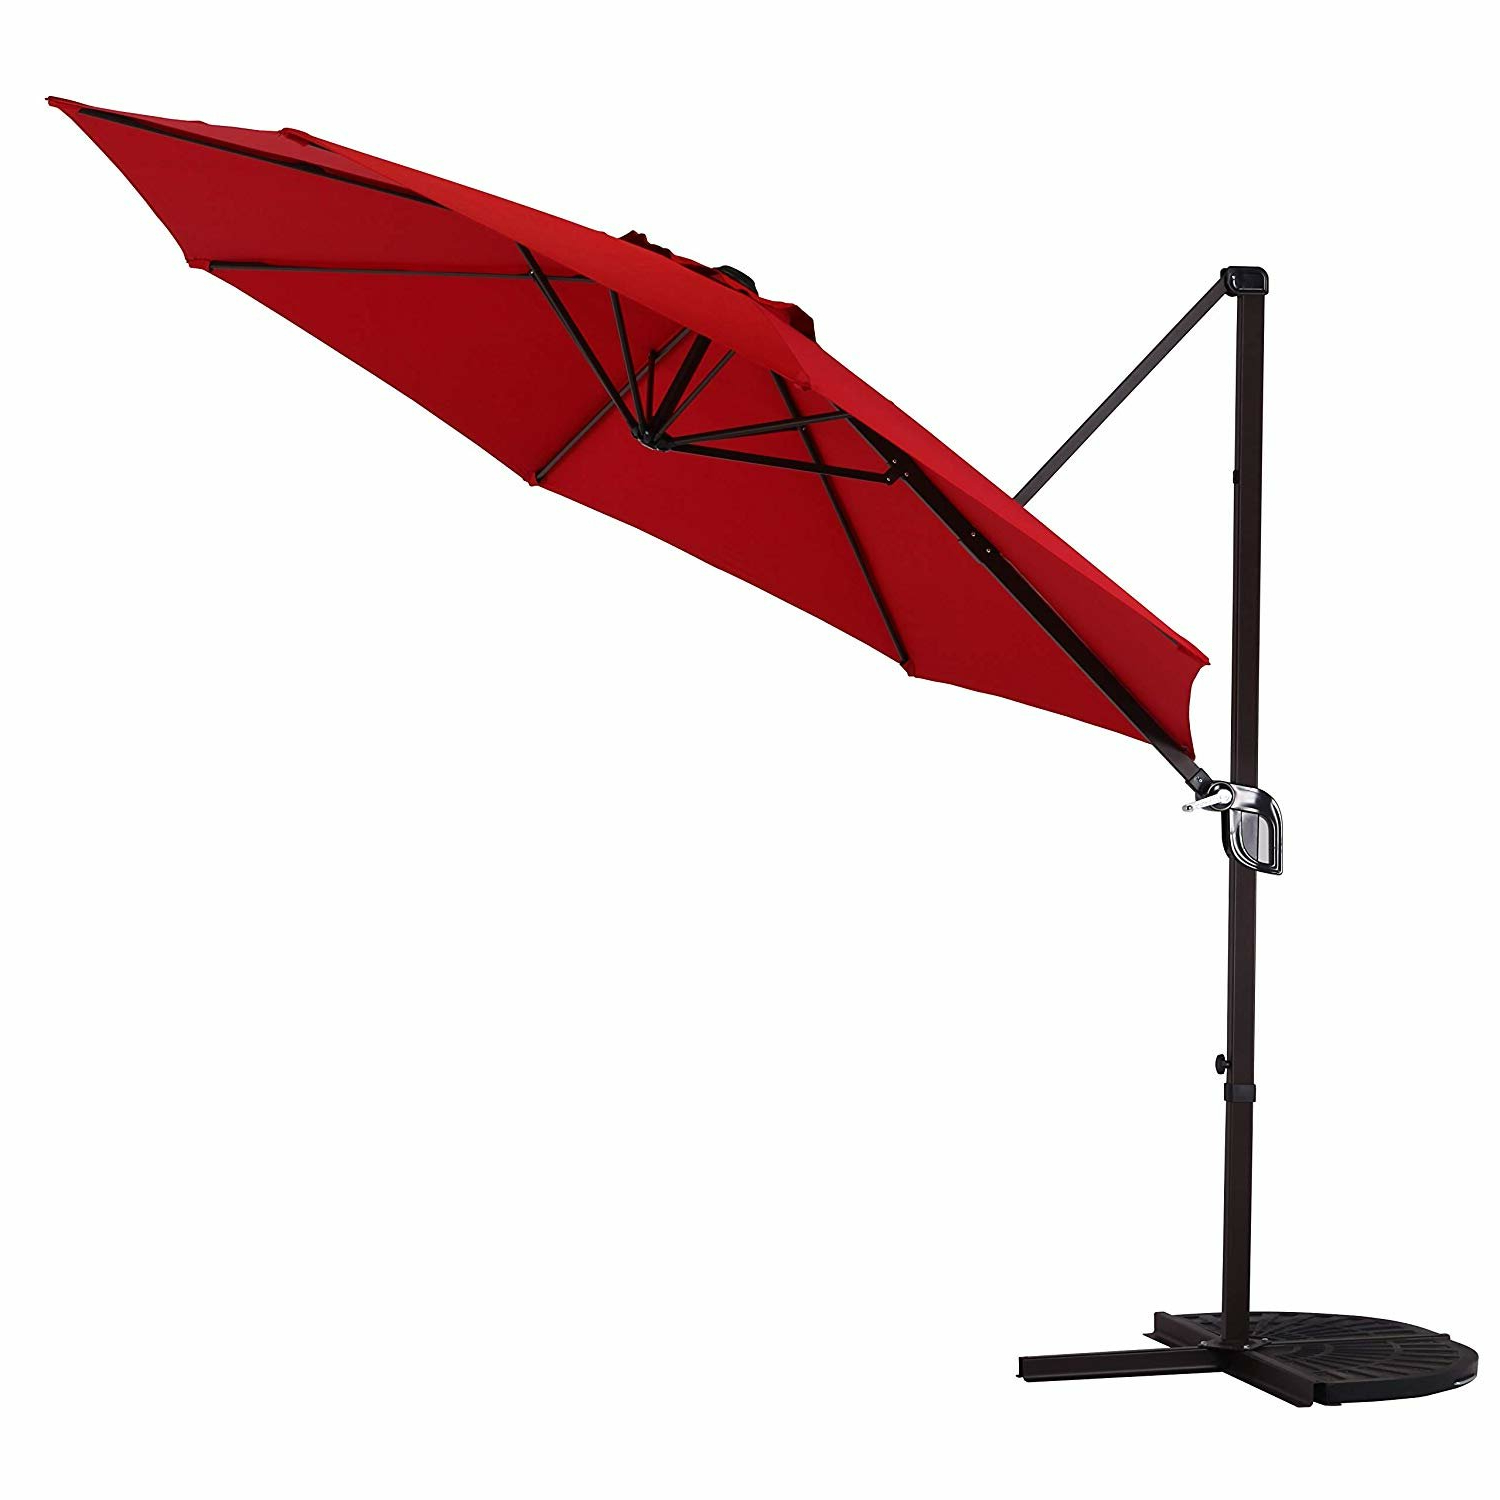 Tayla 10' Cantilever Umbrella With Most Current Tottenham Patio Hanging Offset Cantilever Umbrellas (View 15 of 20)